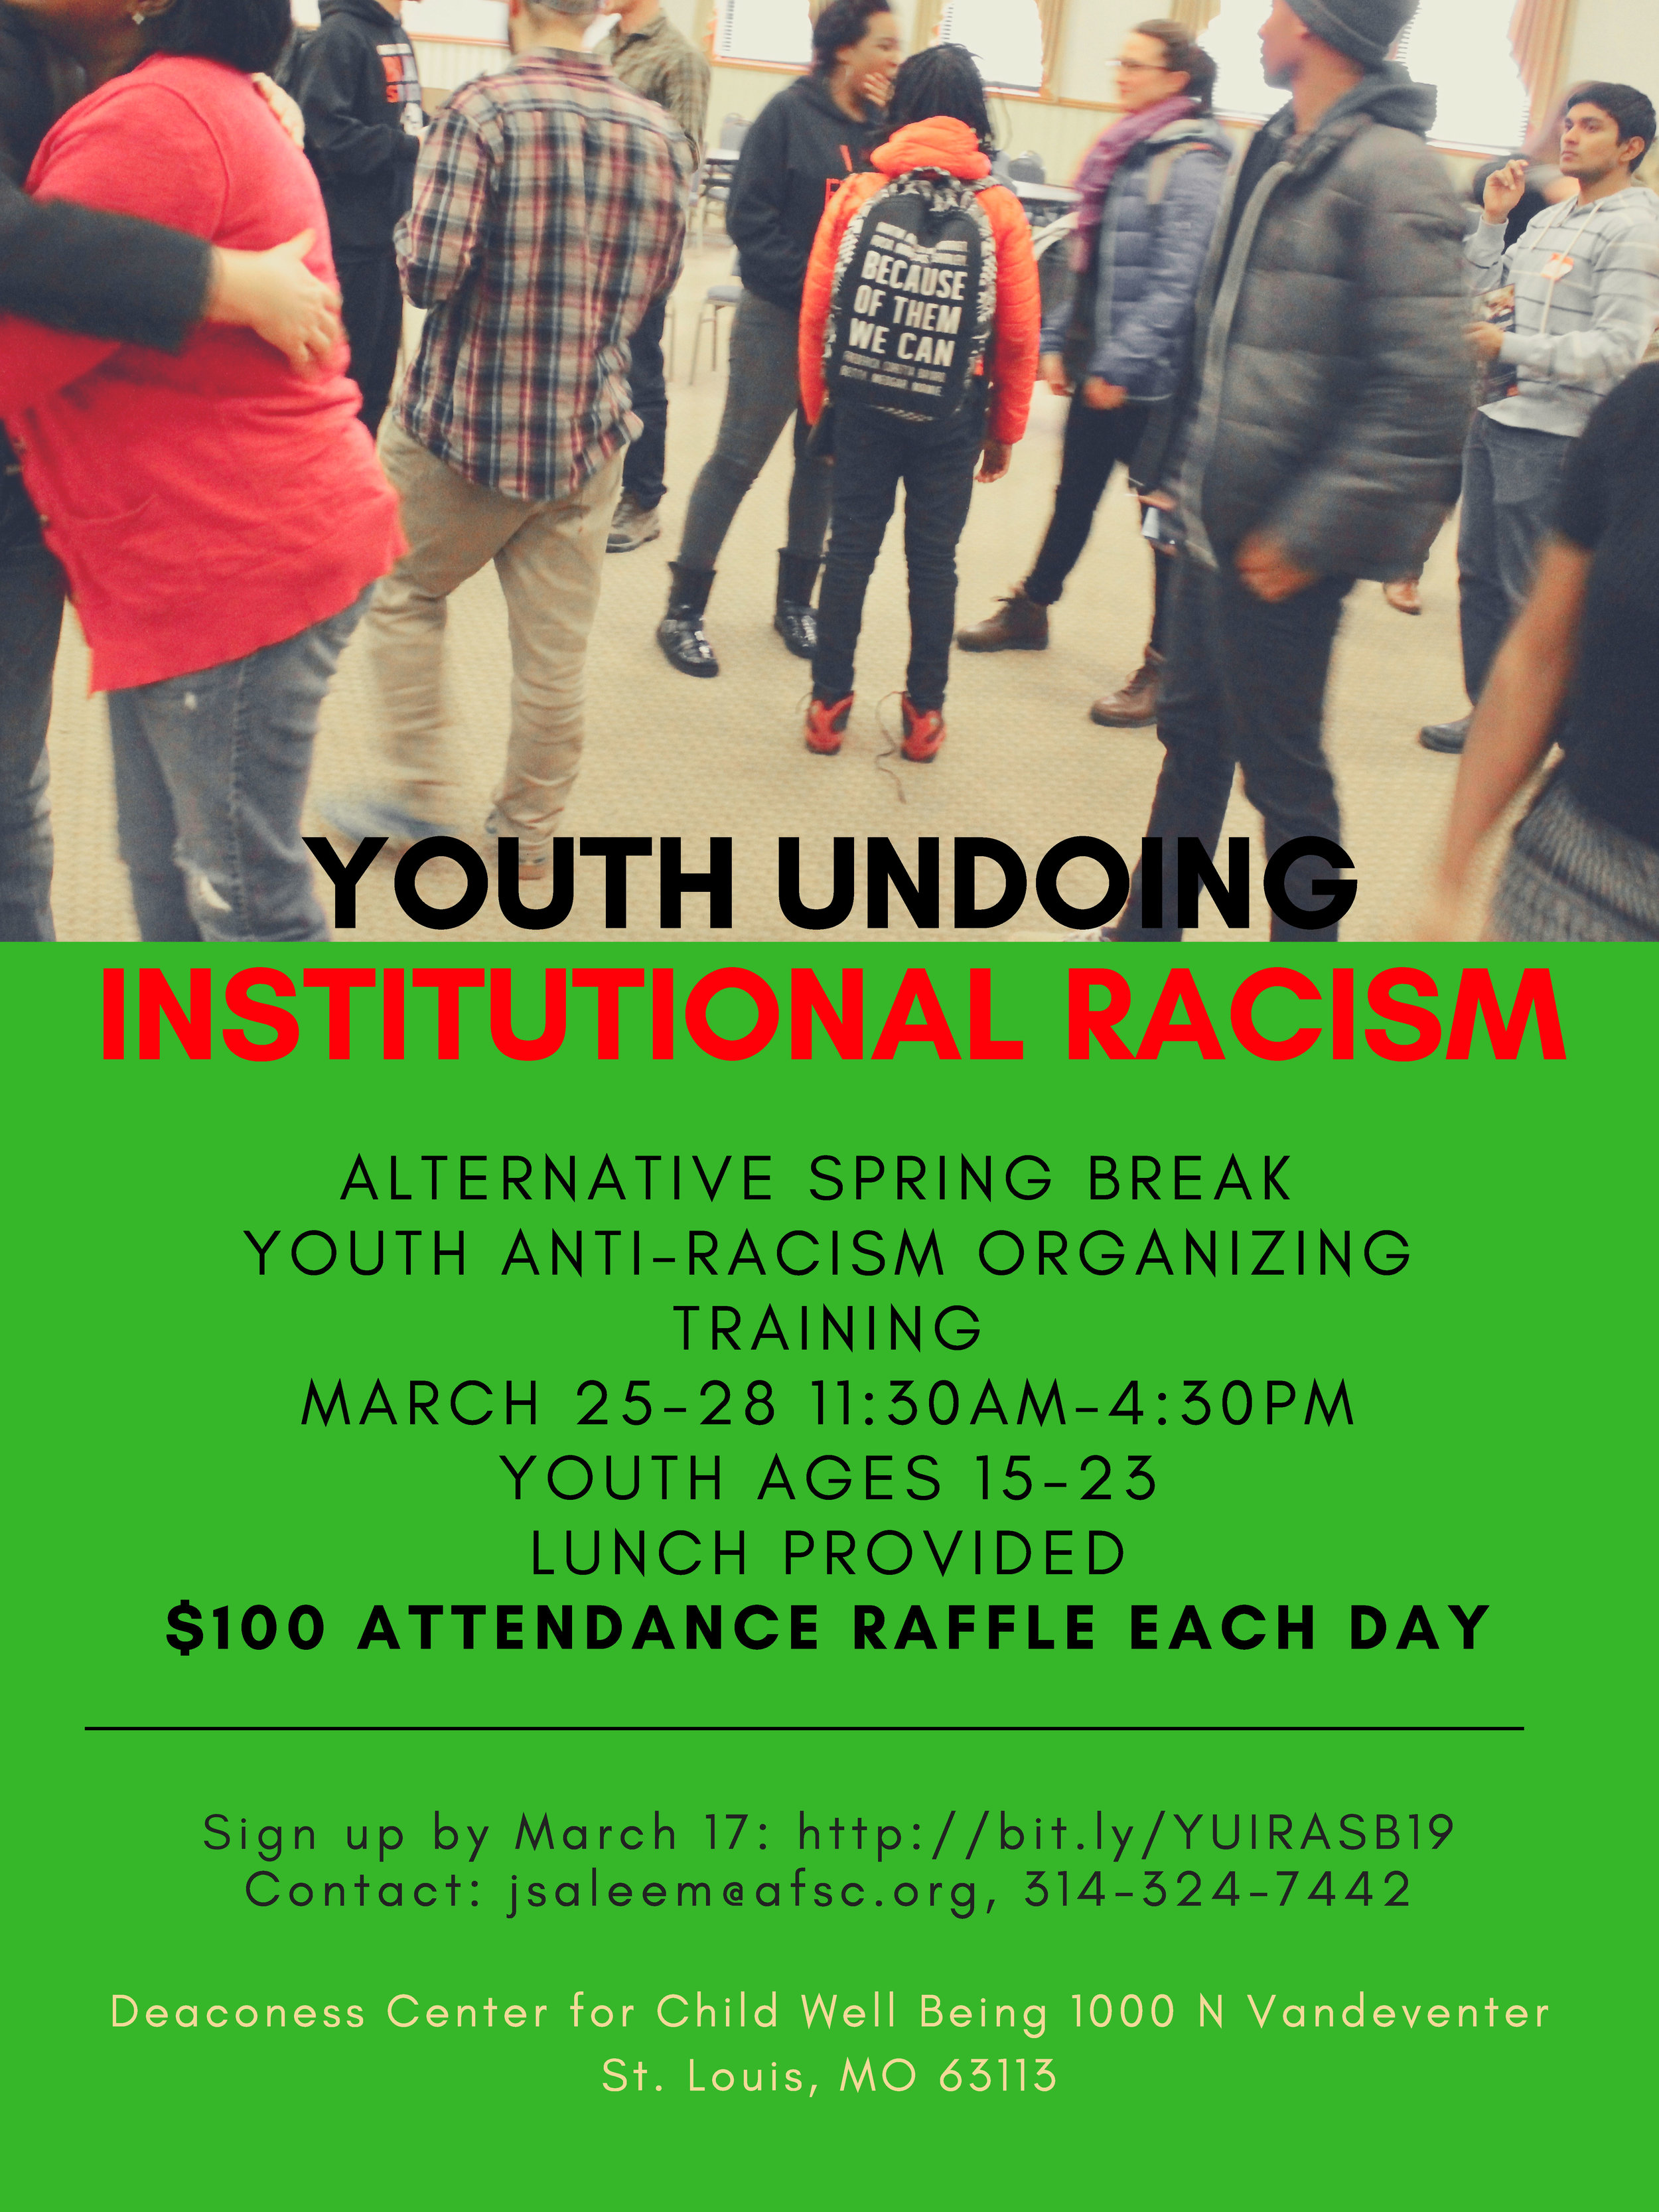 Youth-Undoing-Institutional-Racism-4.jpg